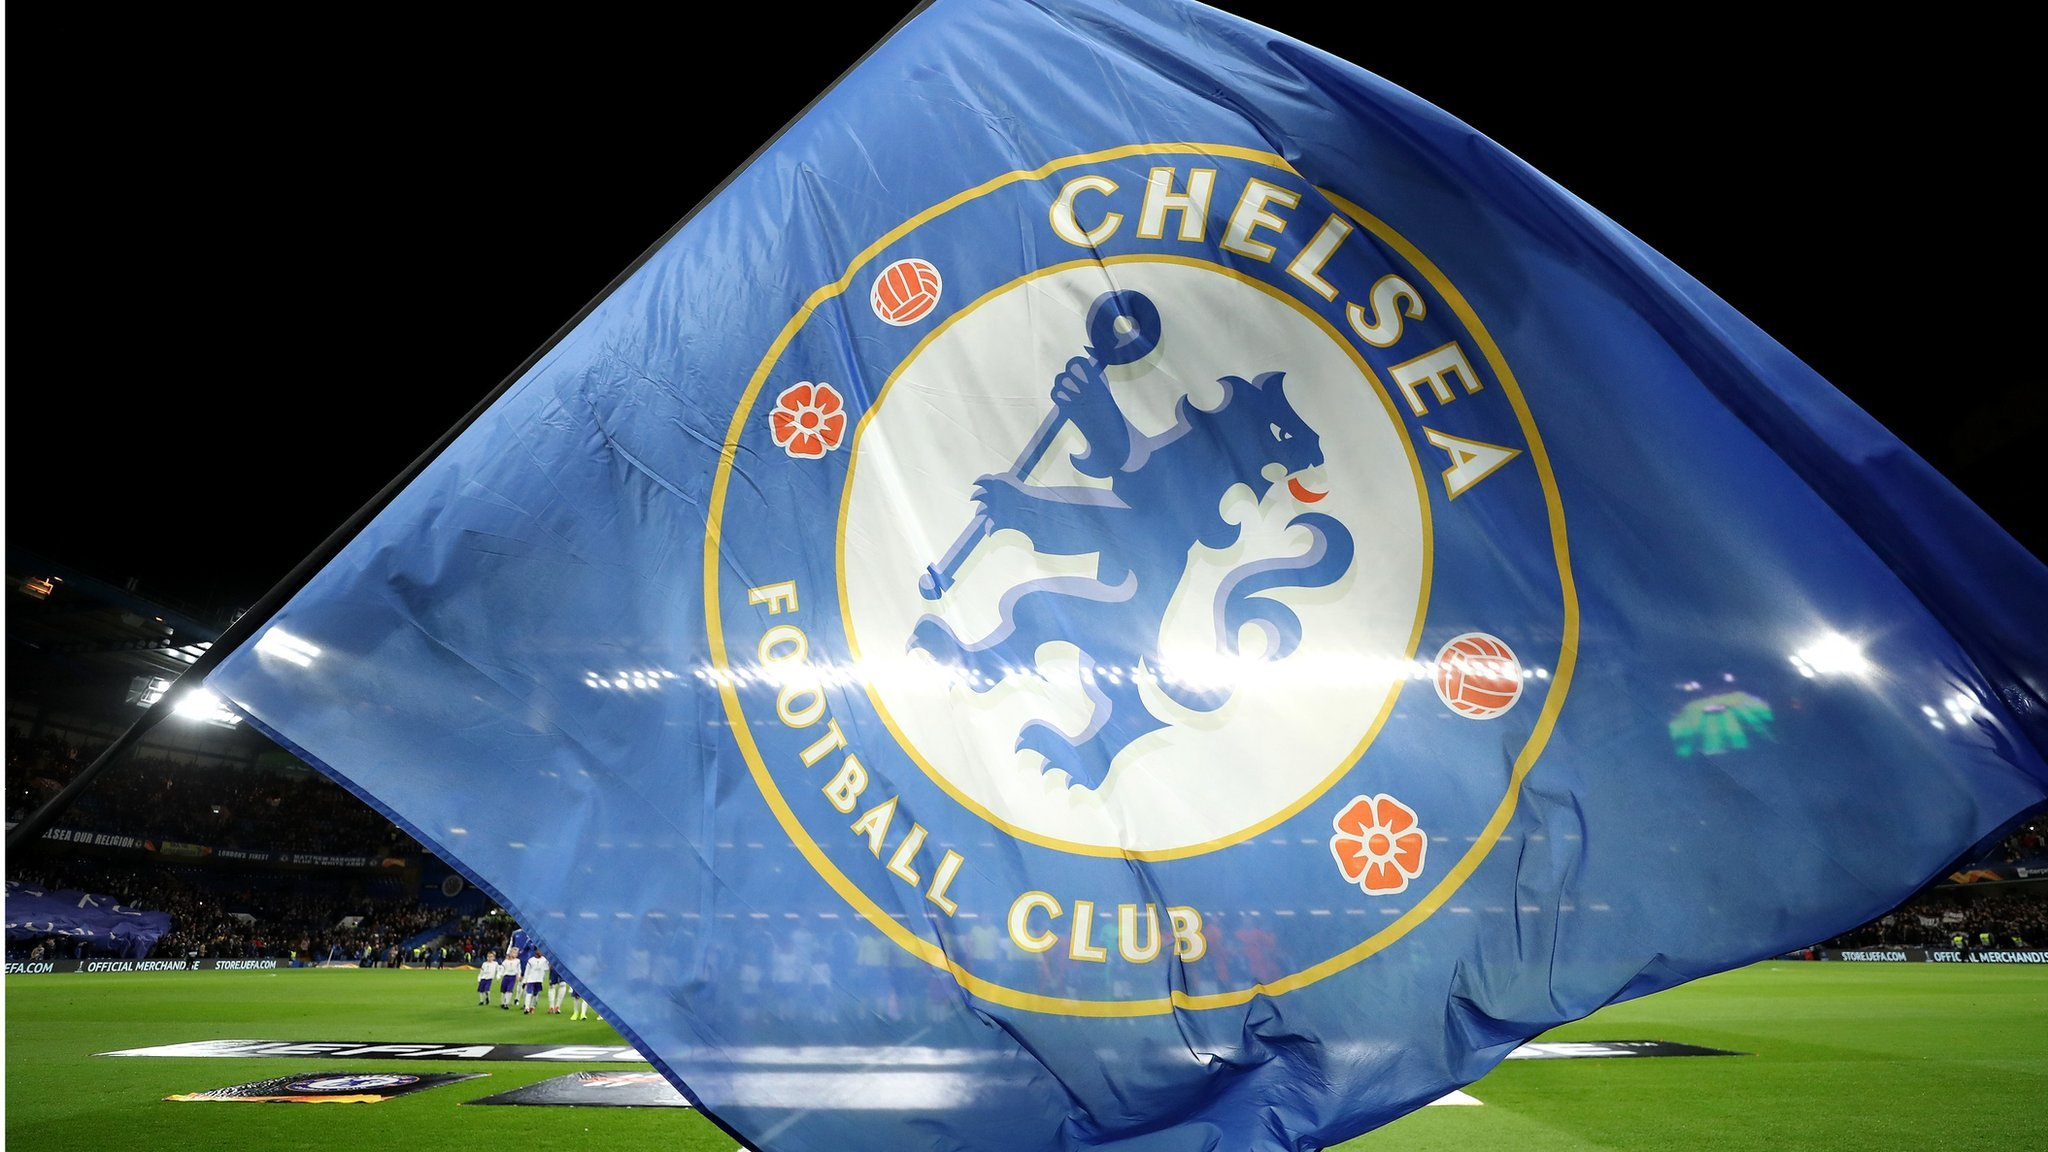 Fans form 'Chelsea Together' to 'stand together' against racism and intolerance